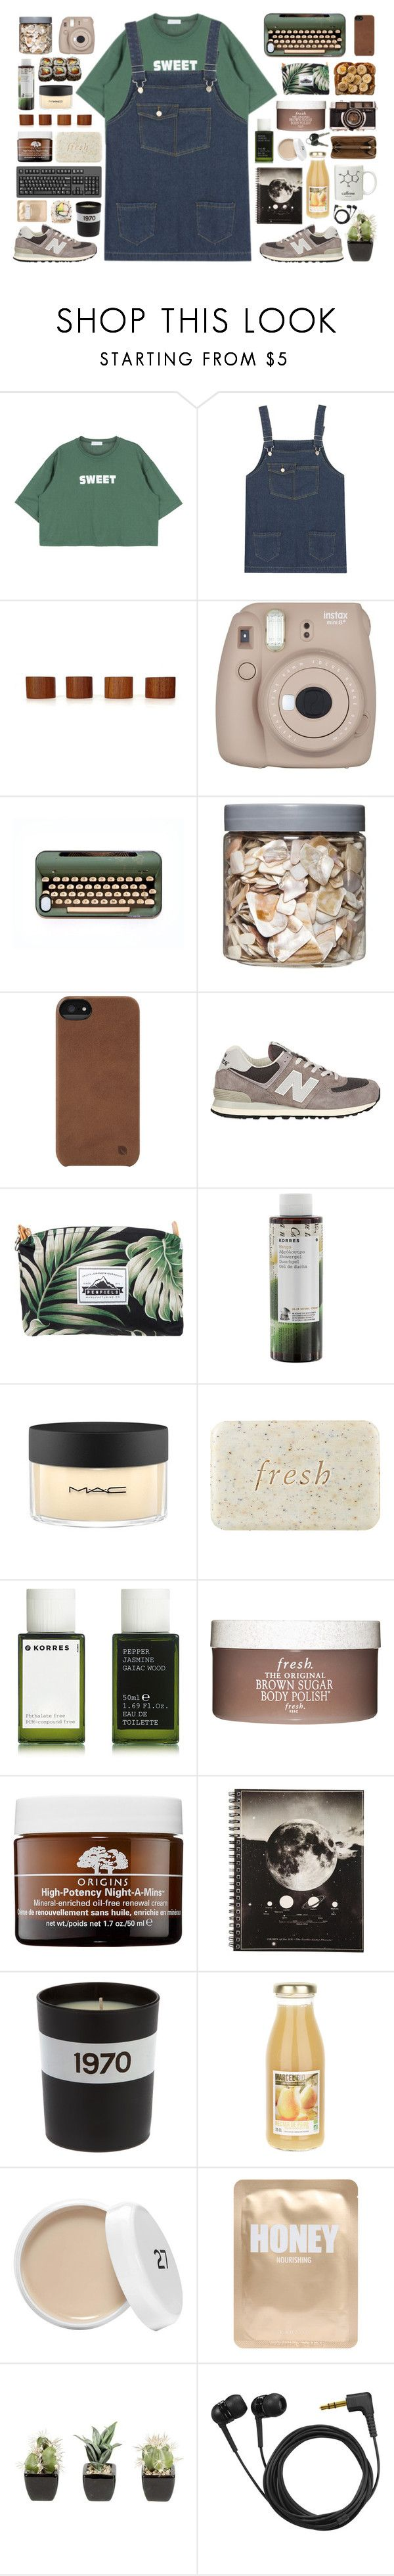 """""""BLACKBIRD SINGING IN THE DEAD OF NIGHT, TAKE THESE BROKEN WINGS AND LEARN TO FLY."""" by faes ❤ liked on Polyvore featuring Retrò, Fujifilm, Threshold, Incase, New Balance, Penfield, Korres, Jura, Fresh and Origins"""